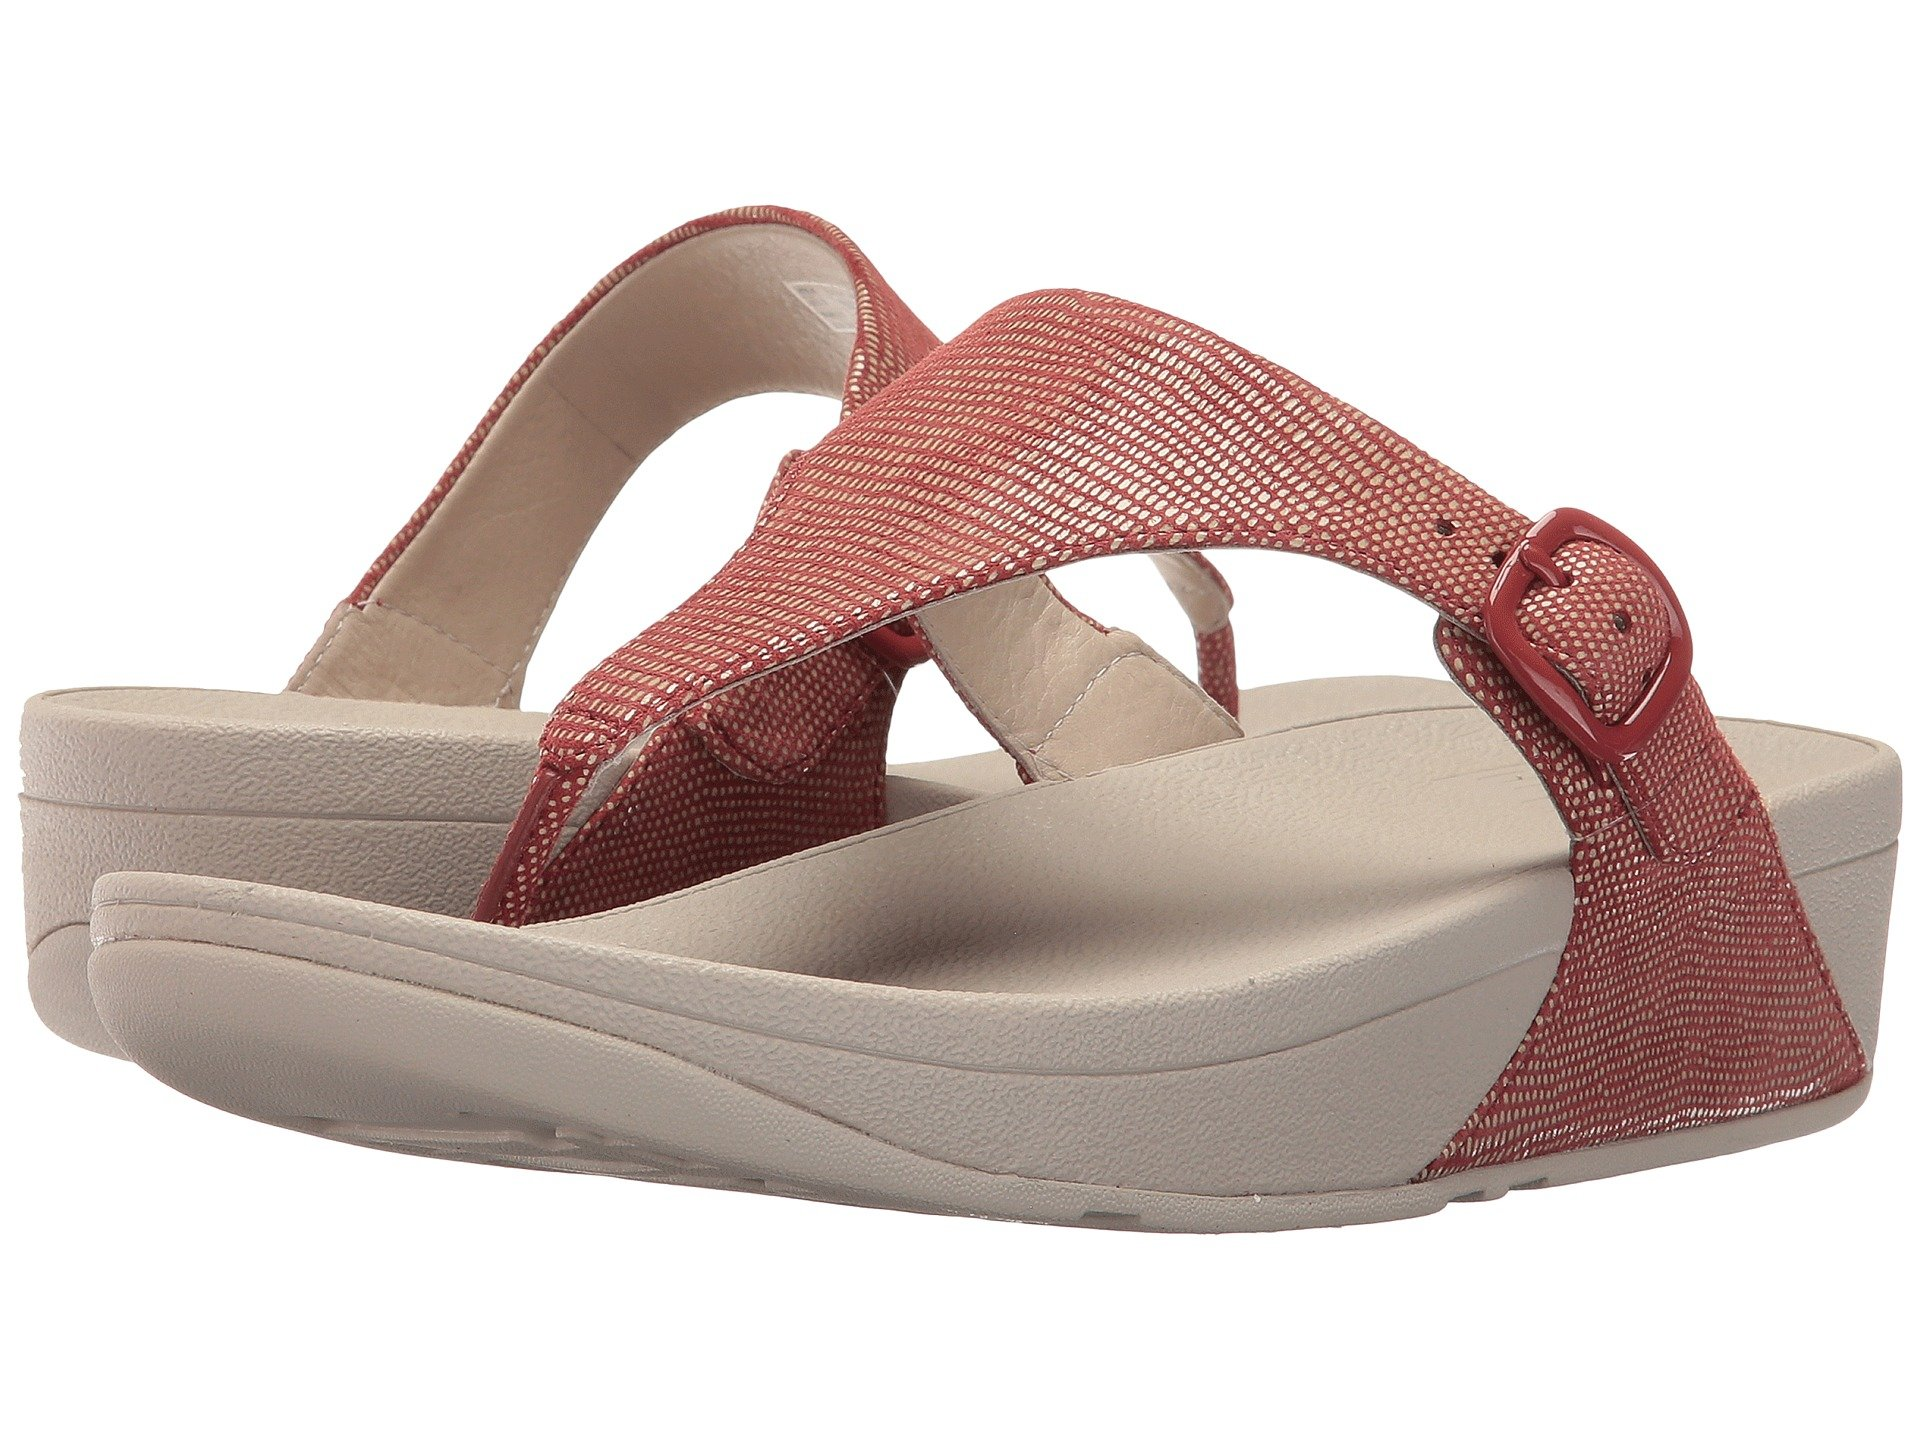 Print Modesens The Skinny Fitflop Spice Lizard gwt4Sq4X